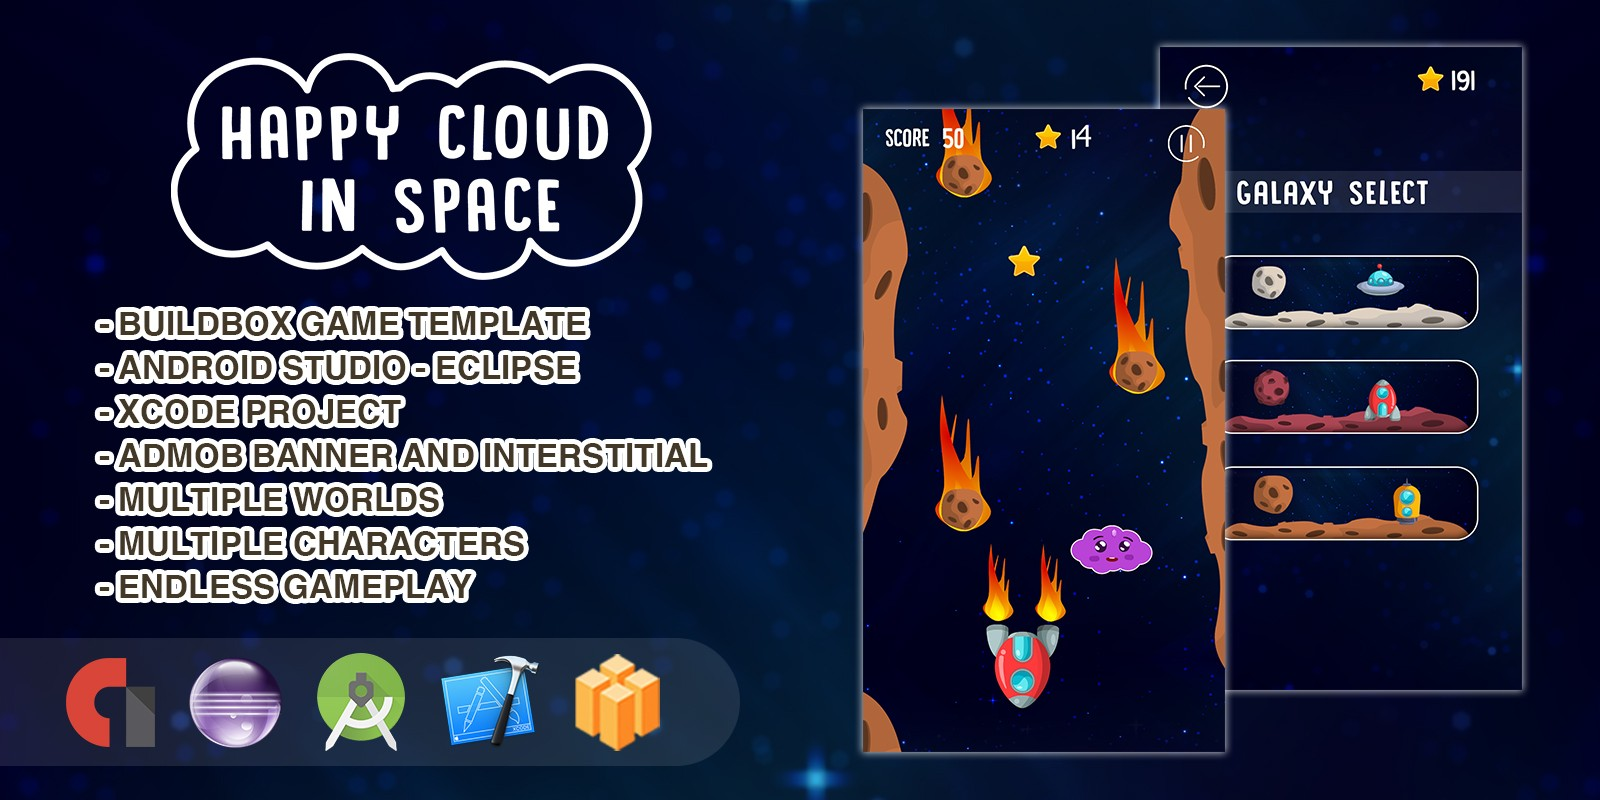 Happy Cloud in The Space - Buildbox Game Template